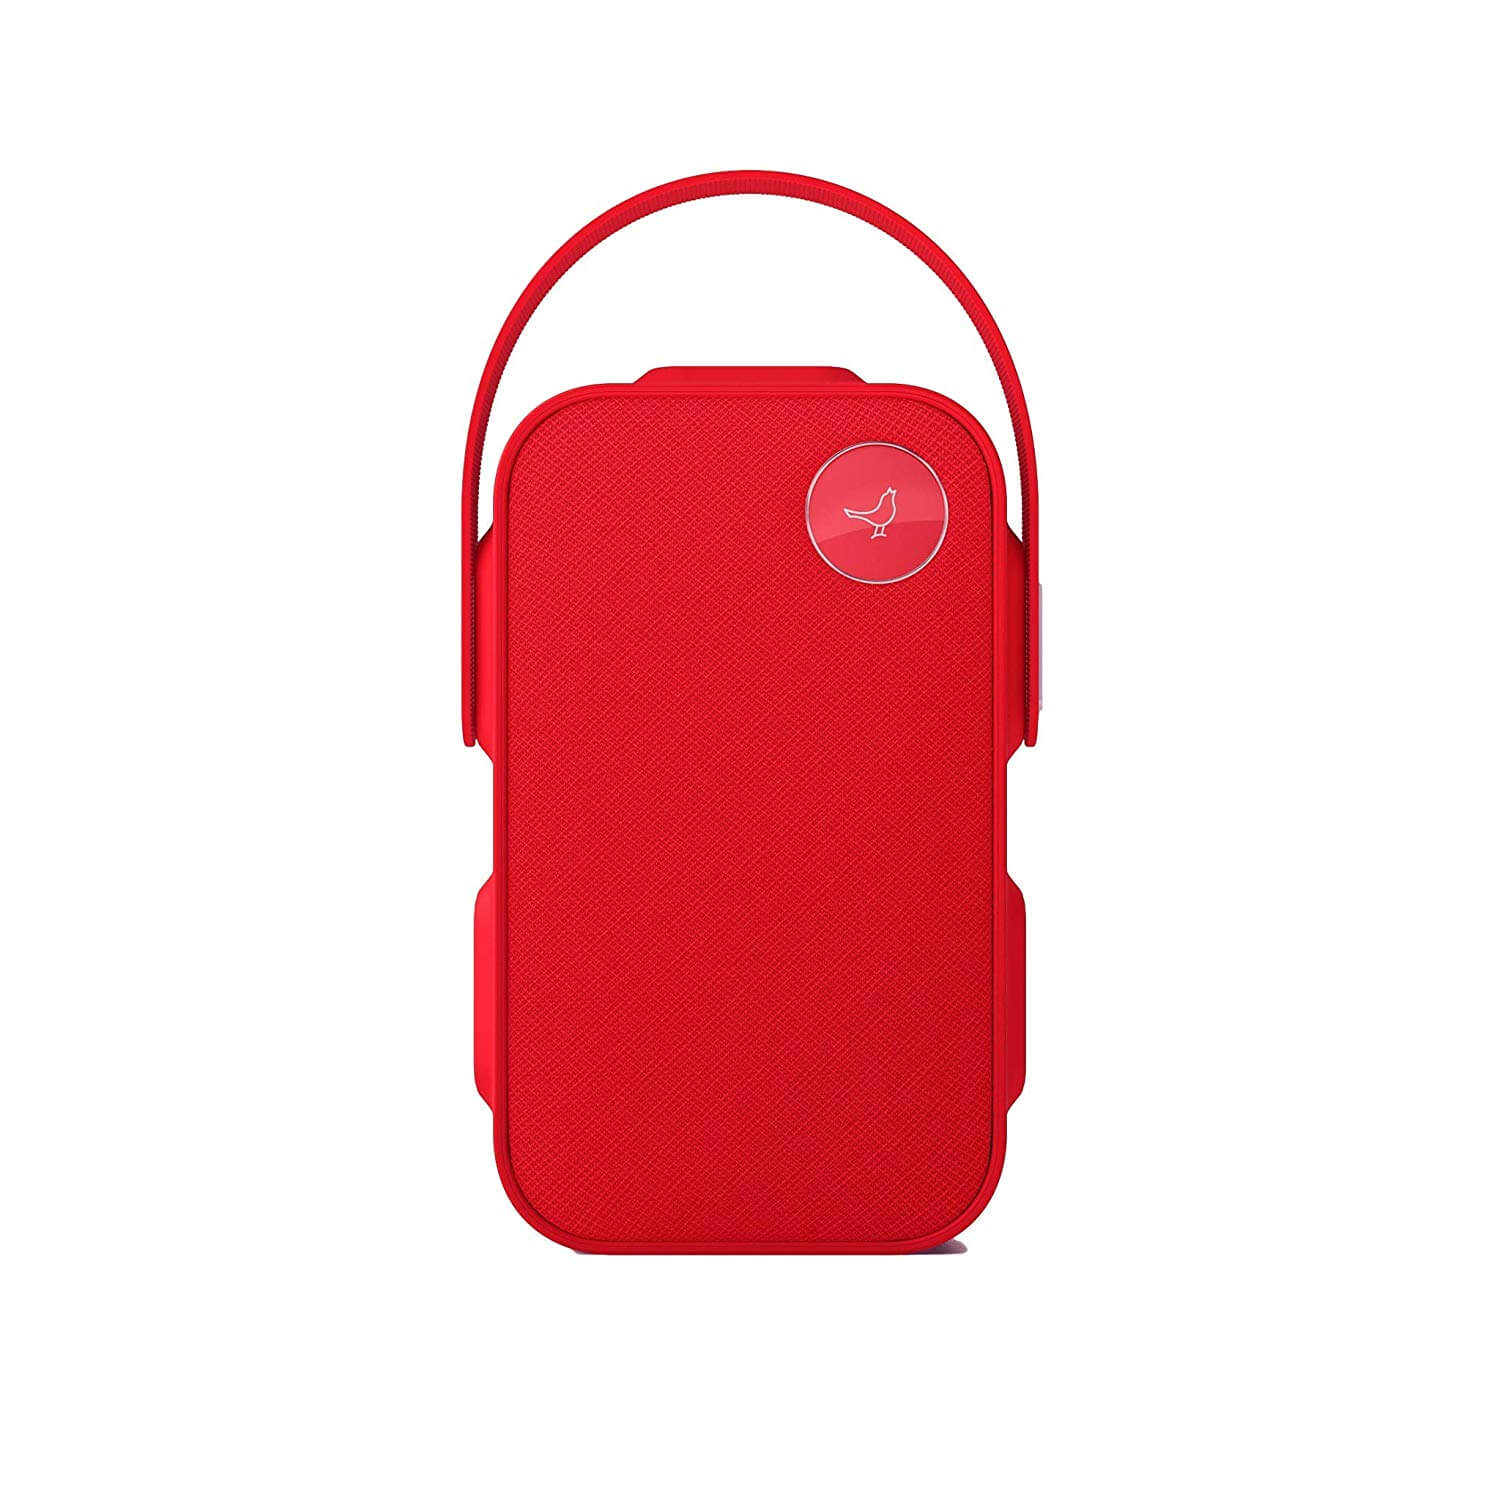 Libratone ONE Click Bluetooth Speaker (360° Sound, Touch Operation, IPX4 Splashproof, 12h Rechargeable Battery) - Cerise Red